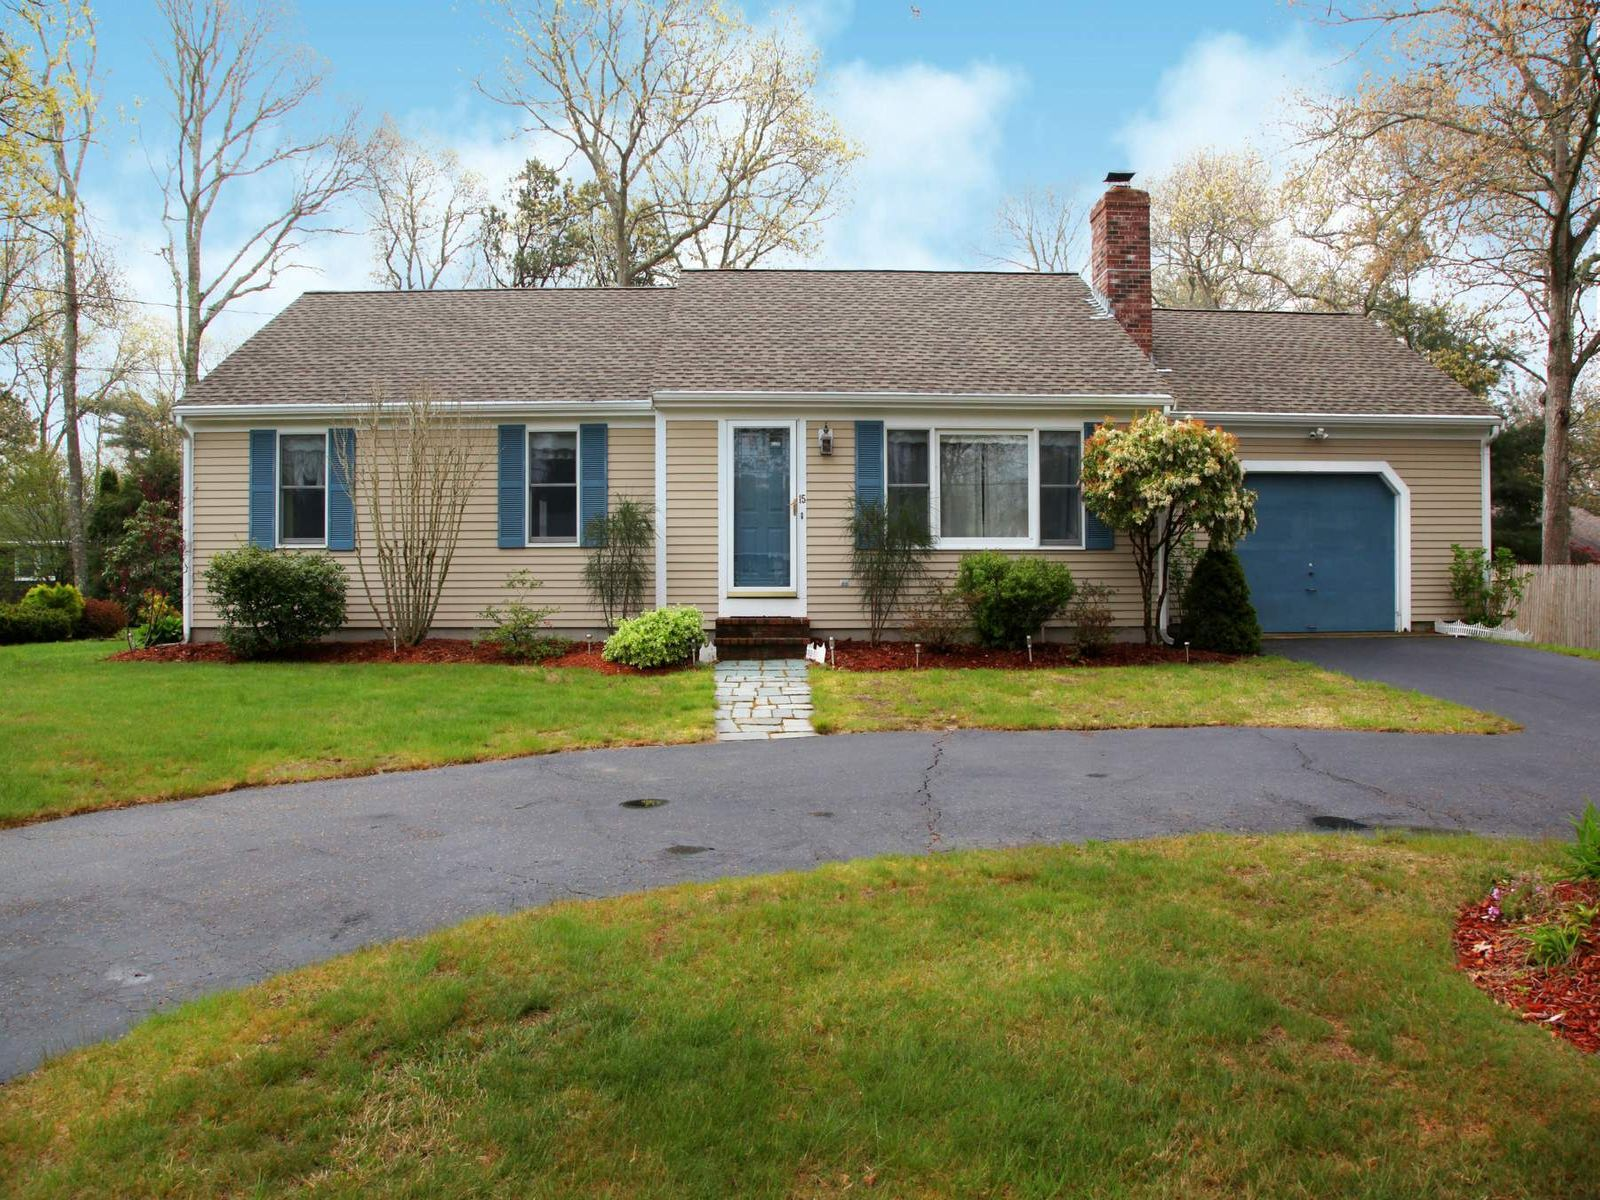 Sweet Ranch with Many Amenities, Falmouth MA Single Family Home - Cape Cod Real Estate